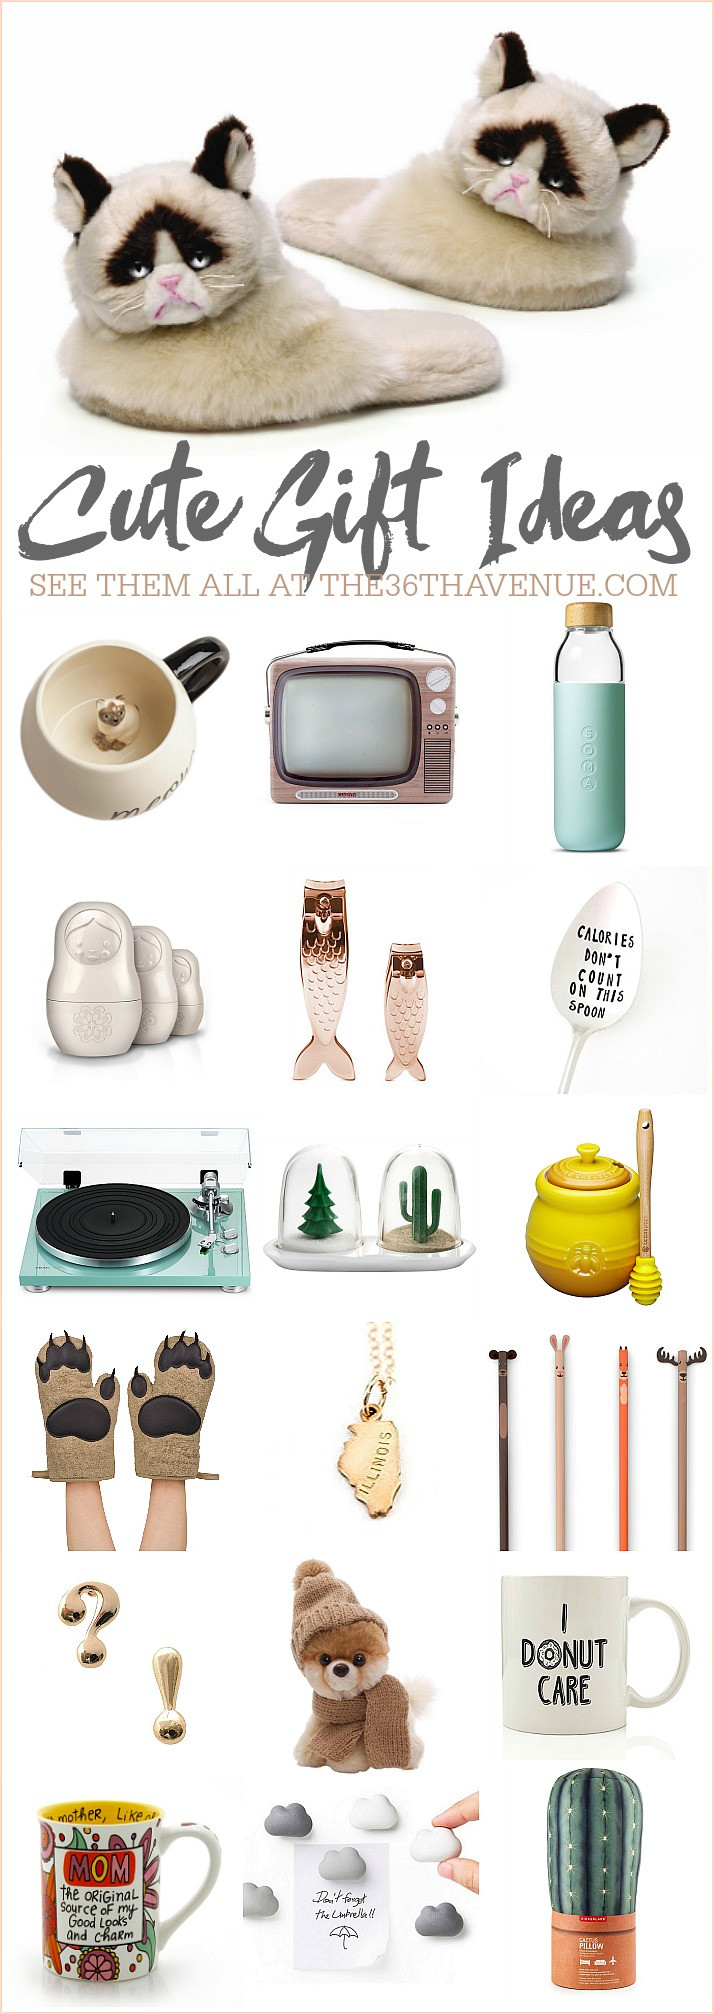 Christmas Gift Ideas For Women  25 Gift Ideas Cute Women Gifts The 36th AVENUE